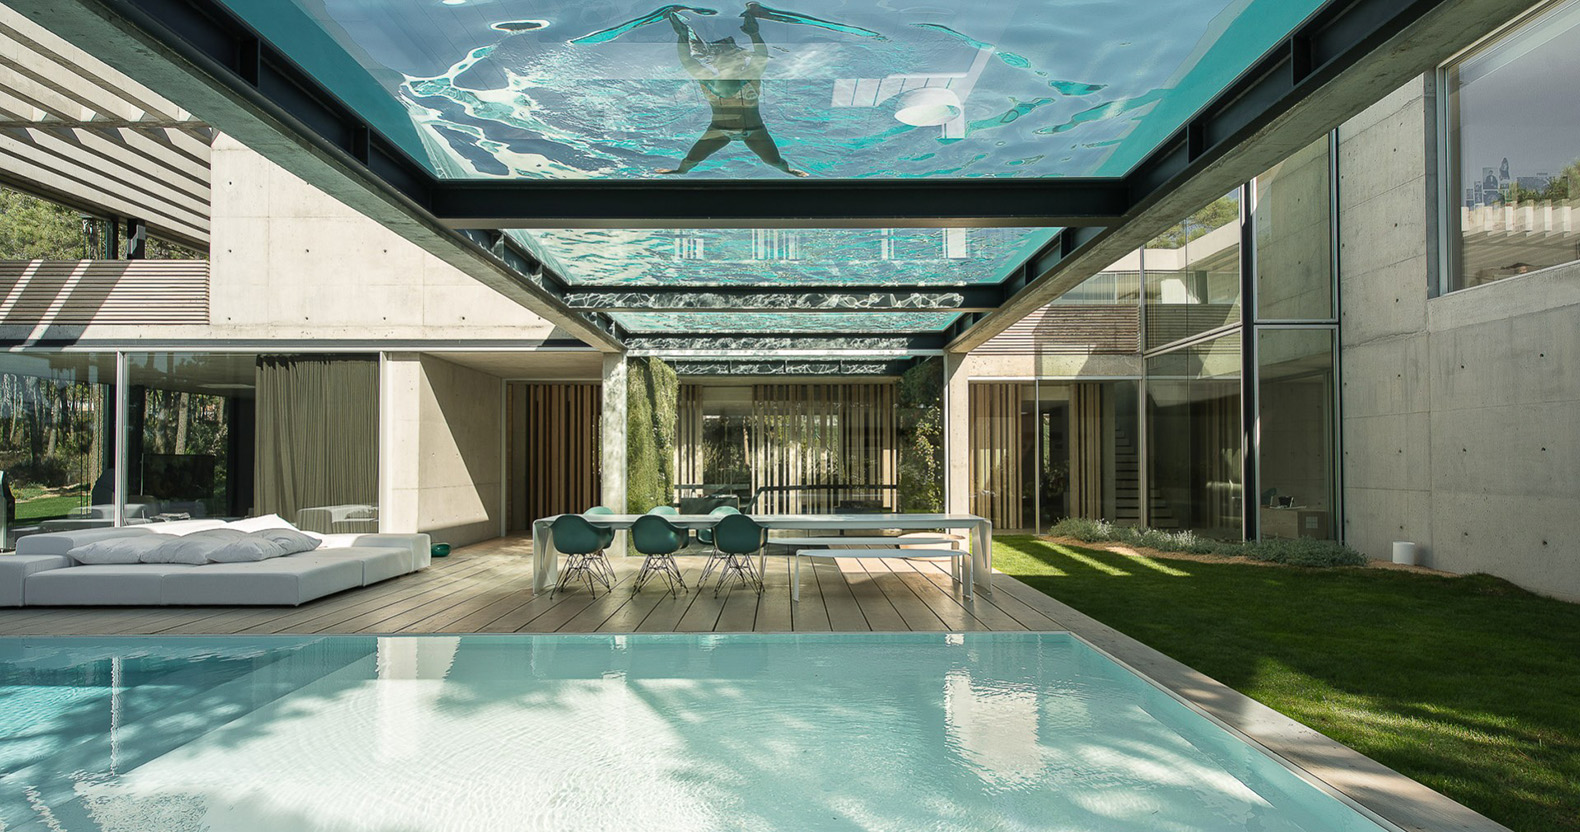 Elevated Glass Bottomed Pool Hovers Over A Second Pool In The Hip Wall House Inhabitat Green